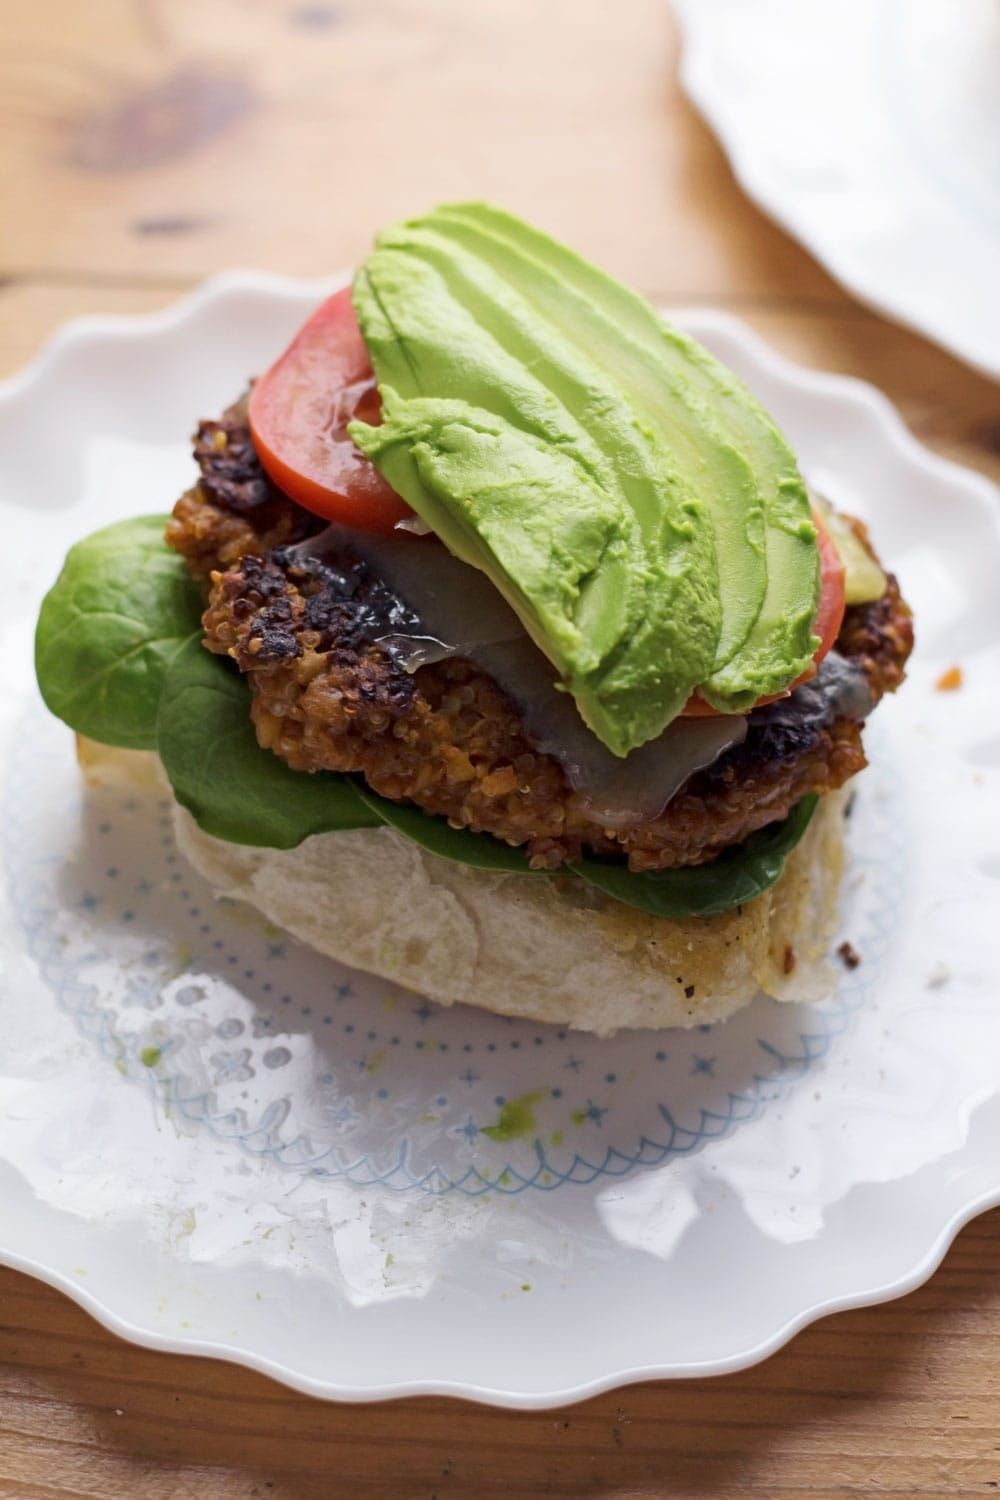 Chickpea Quinoa Veggie Burgers The Cook Report Recipes